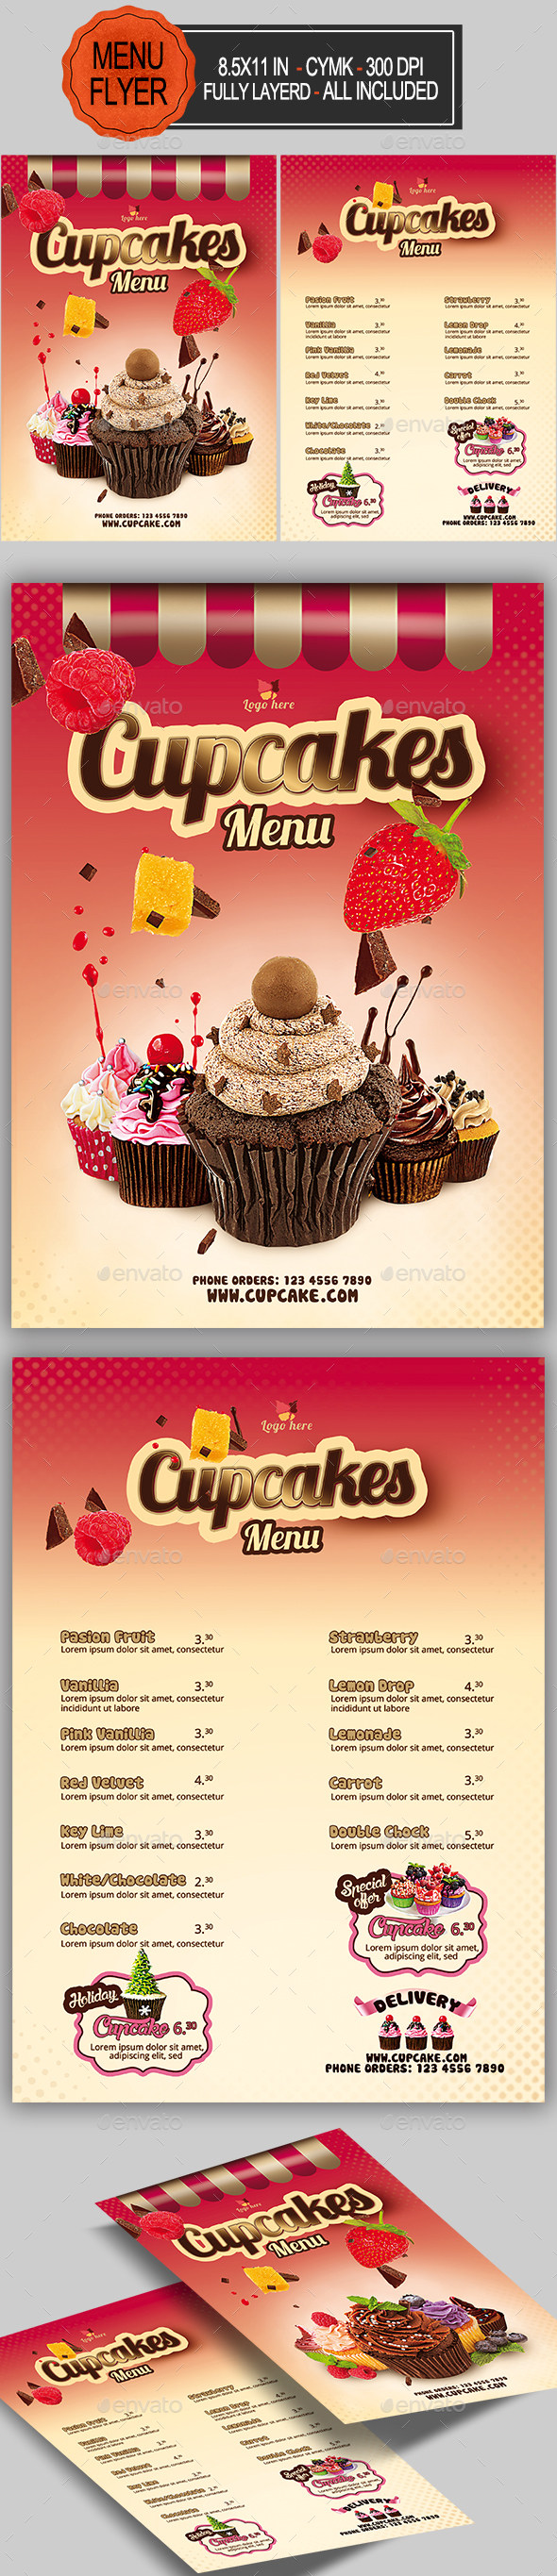 Cupcakes Menu - Food Menus Print Templates